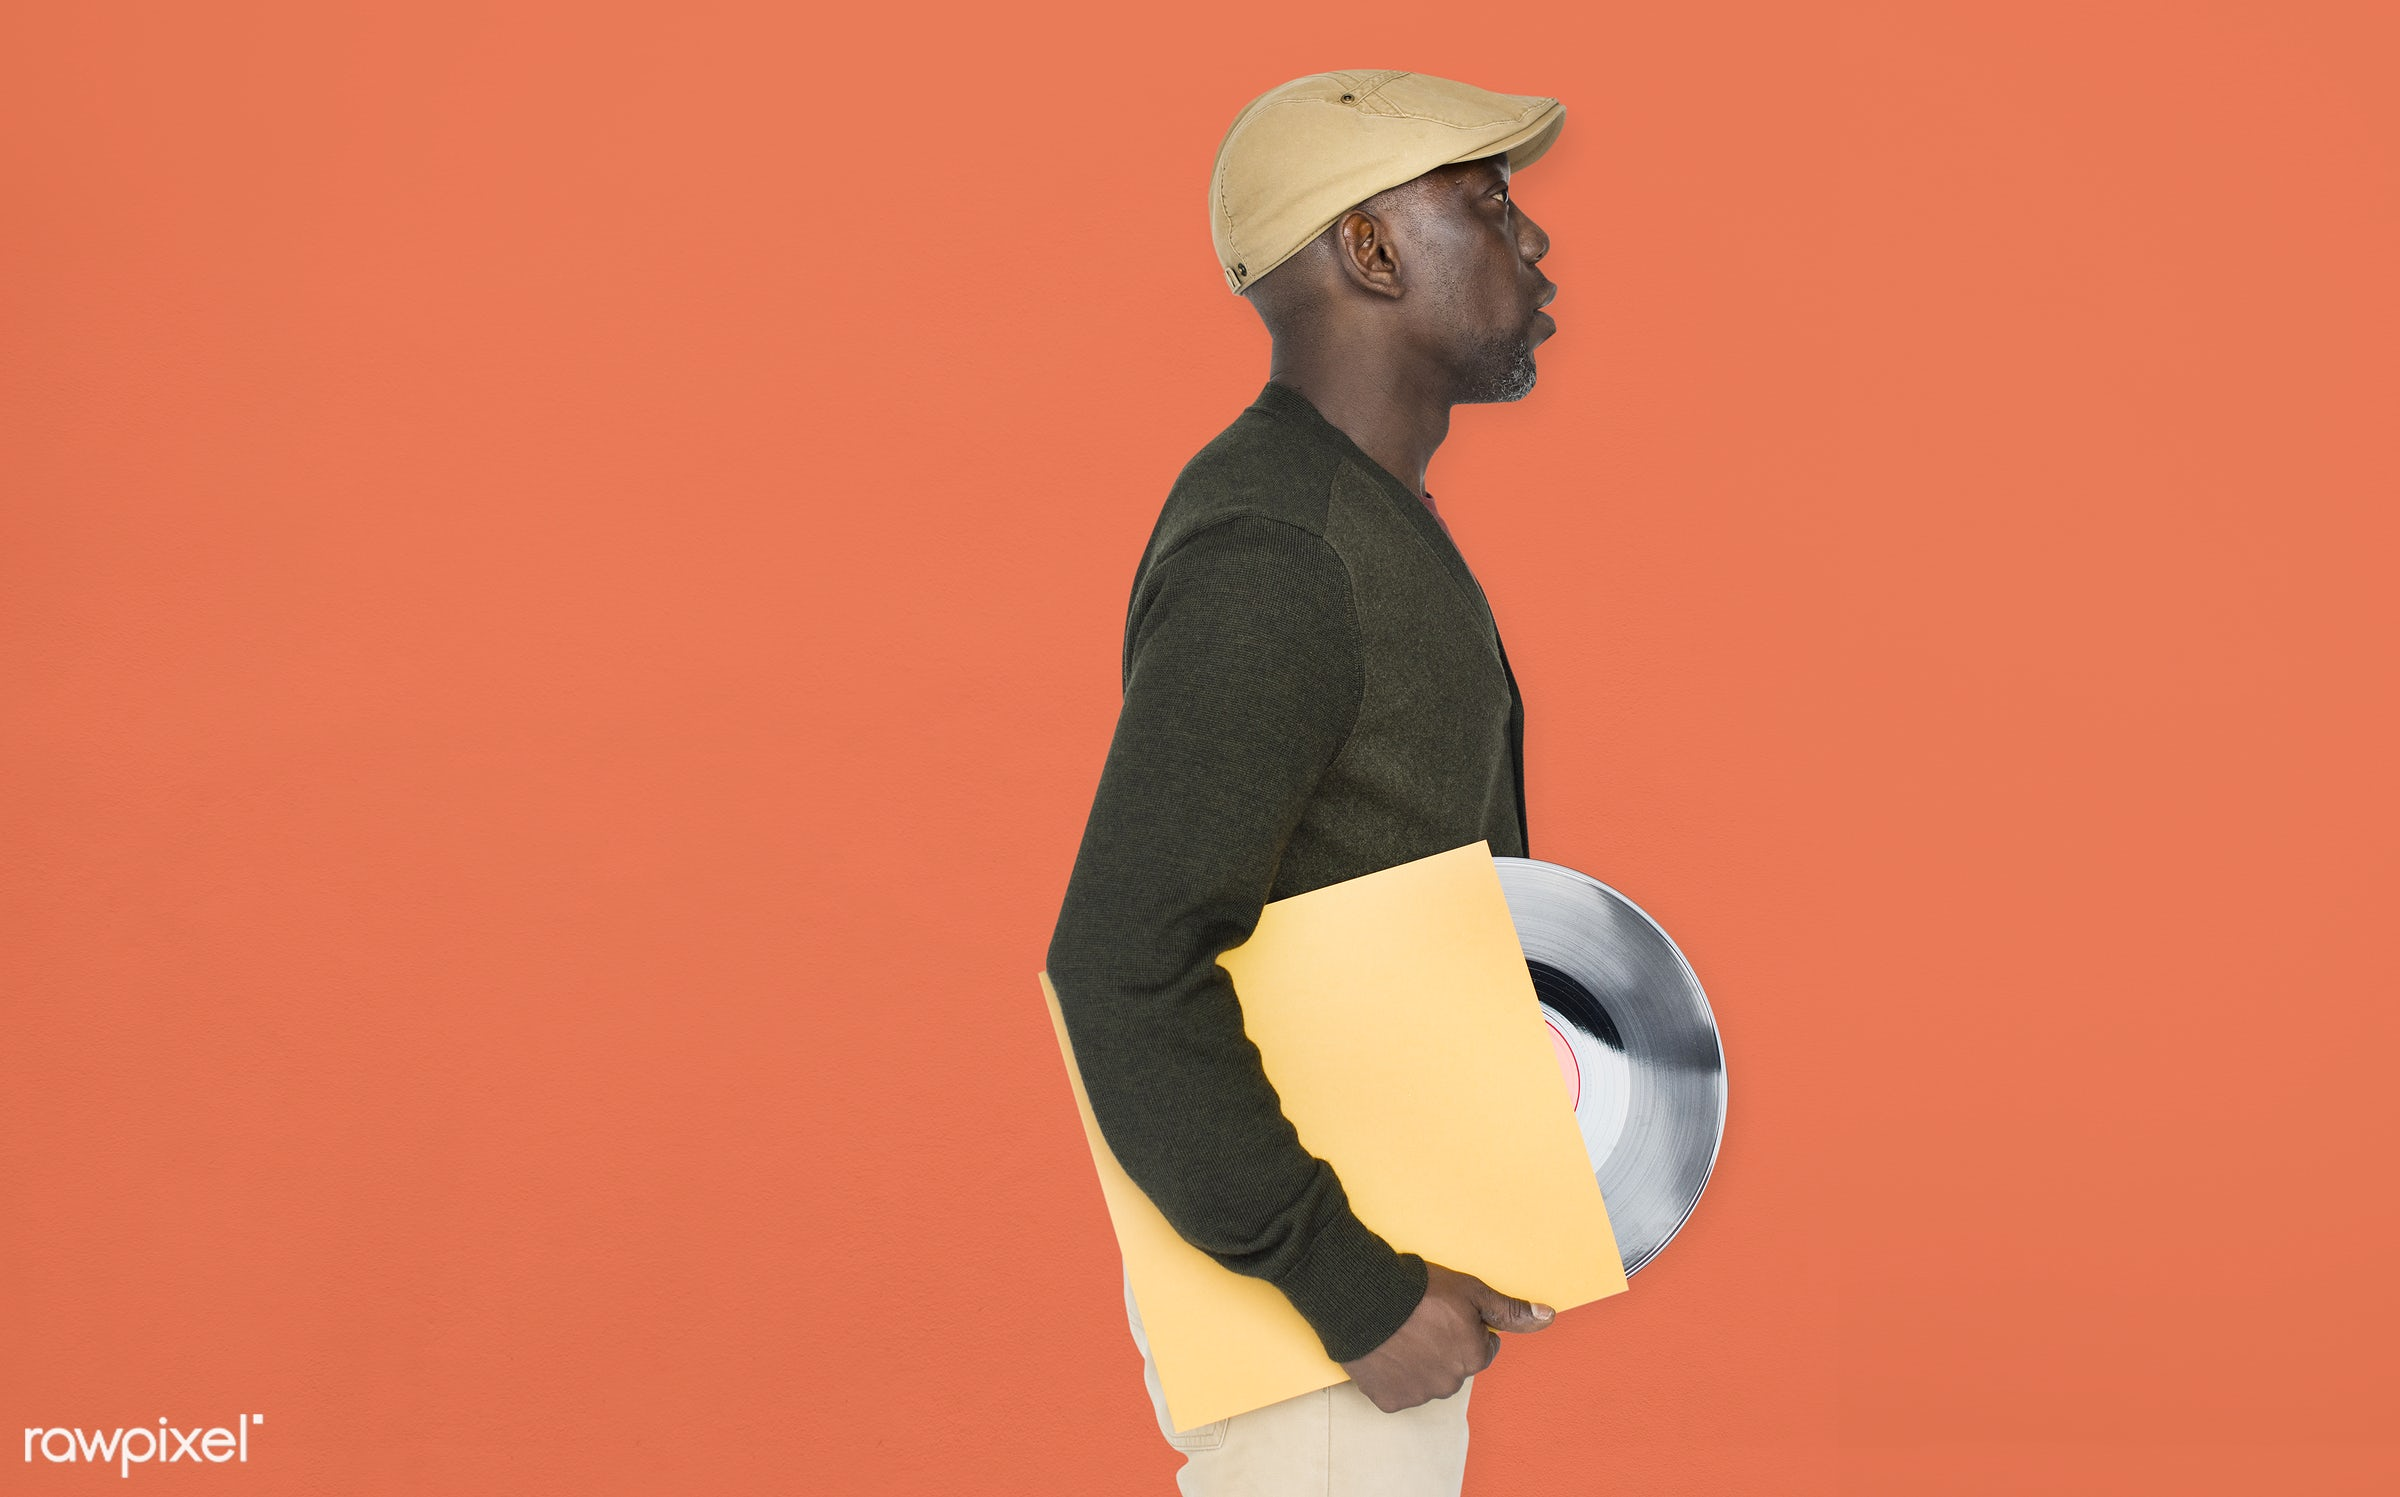 expression, person, retro, recreation, people, race, disc, ancient, vinyl, man, activity, black, music, isolated, guy,...